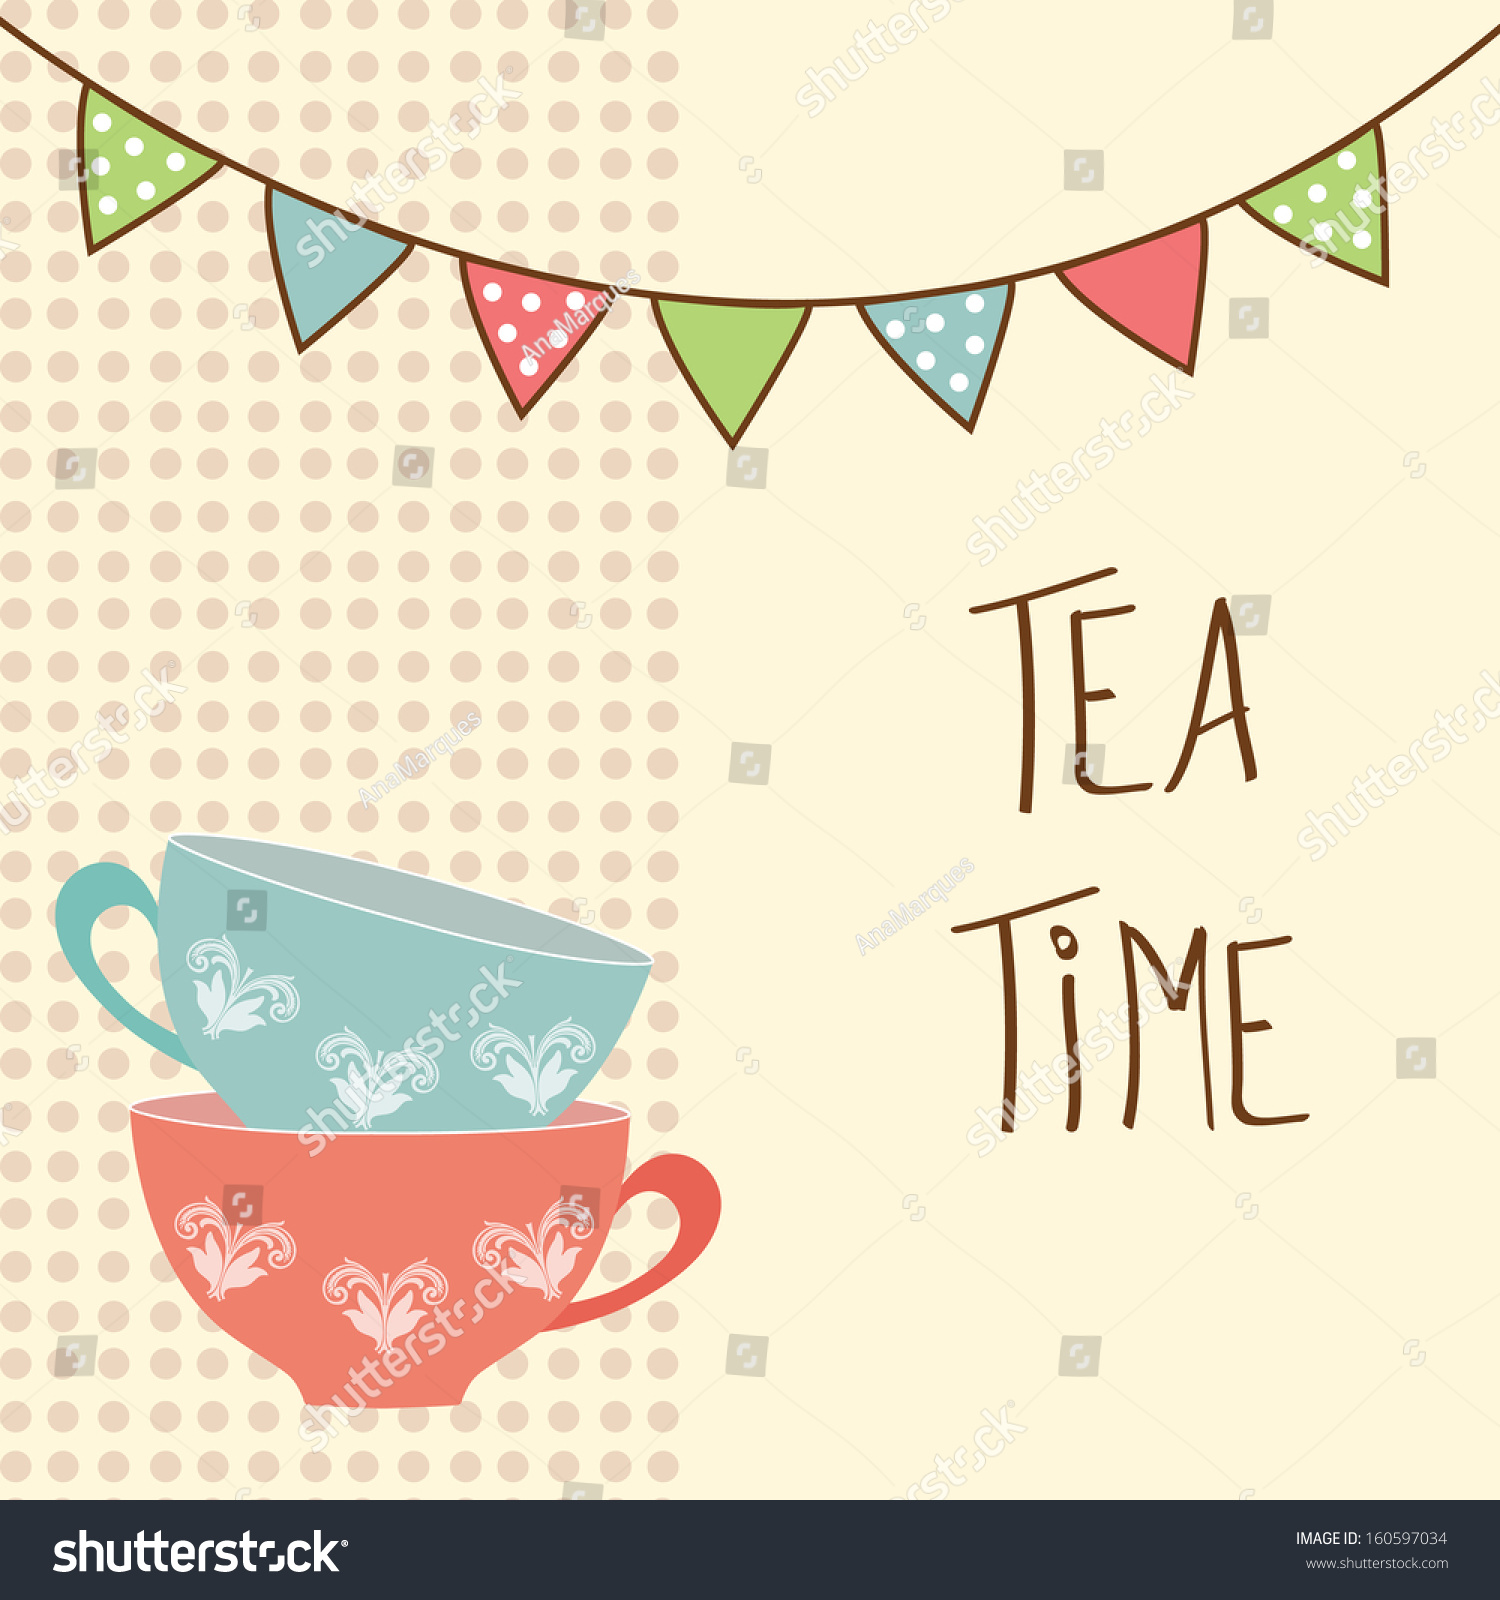 Vector bunting flags lovely celebration card with colorful paper - Beautiful Vintage Card With Tea Cups And Flags Tea Time Vector Illustration